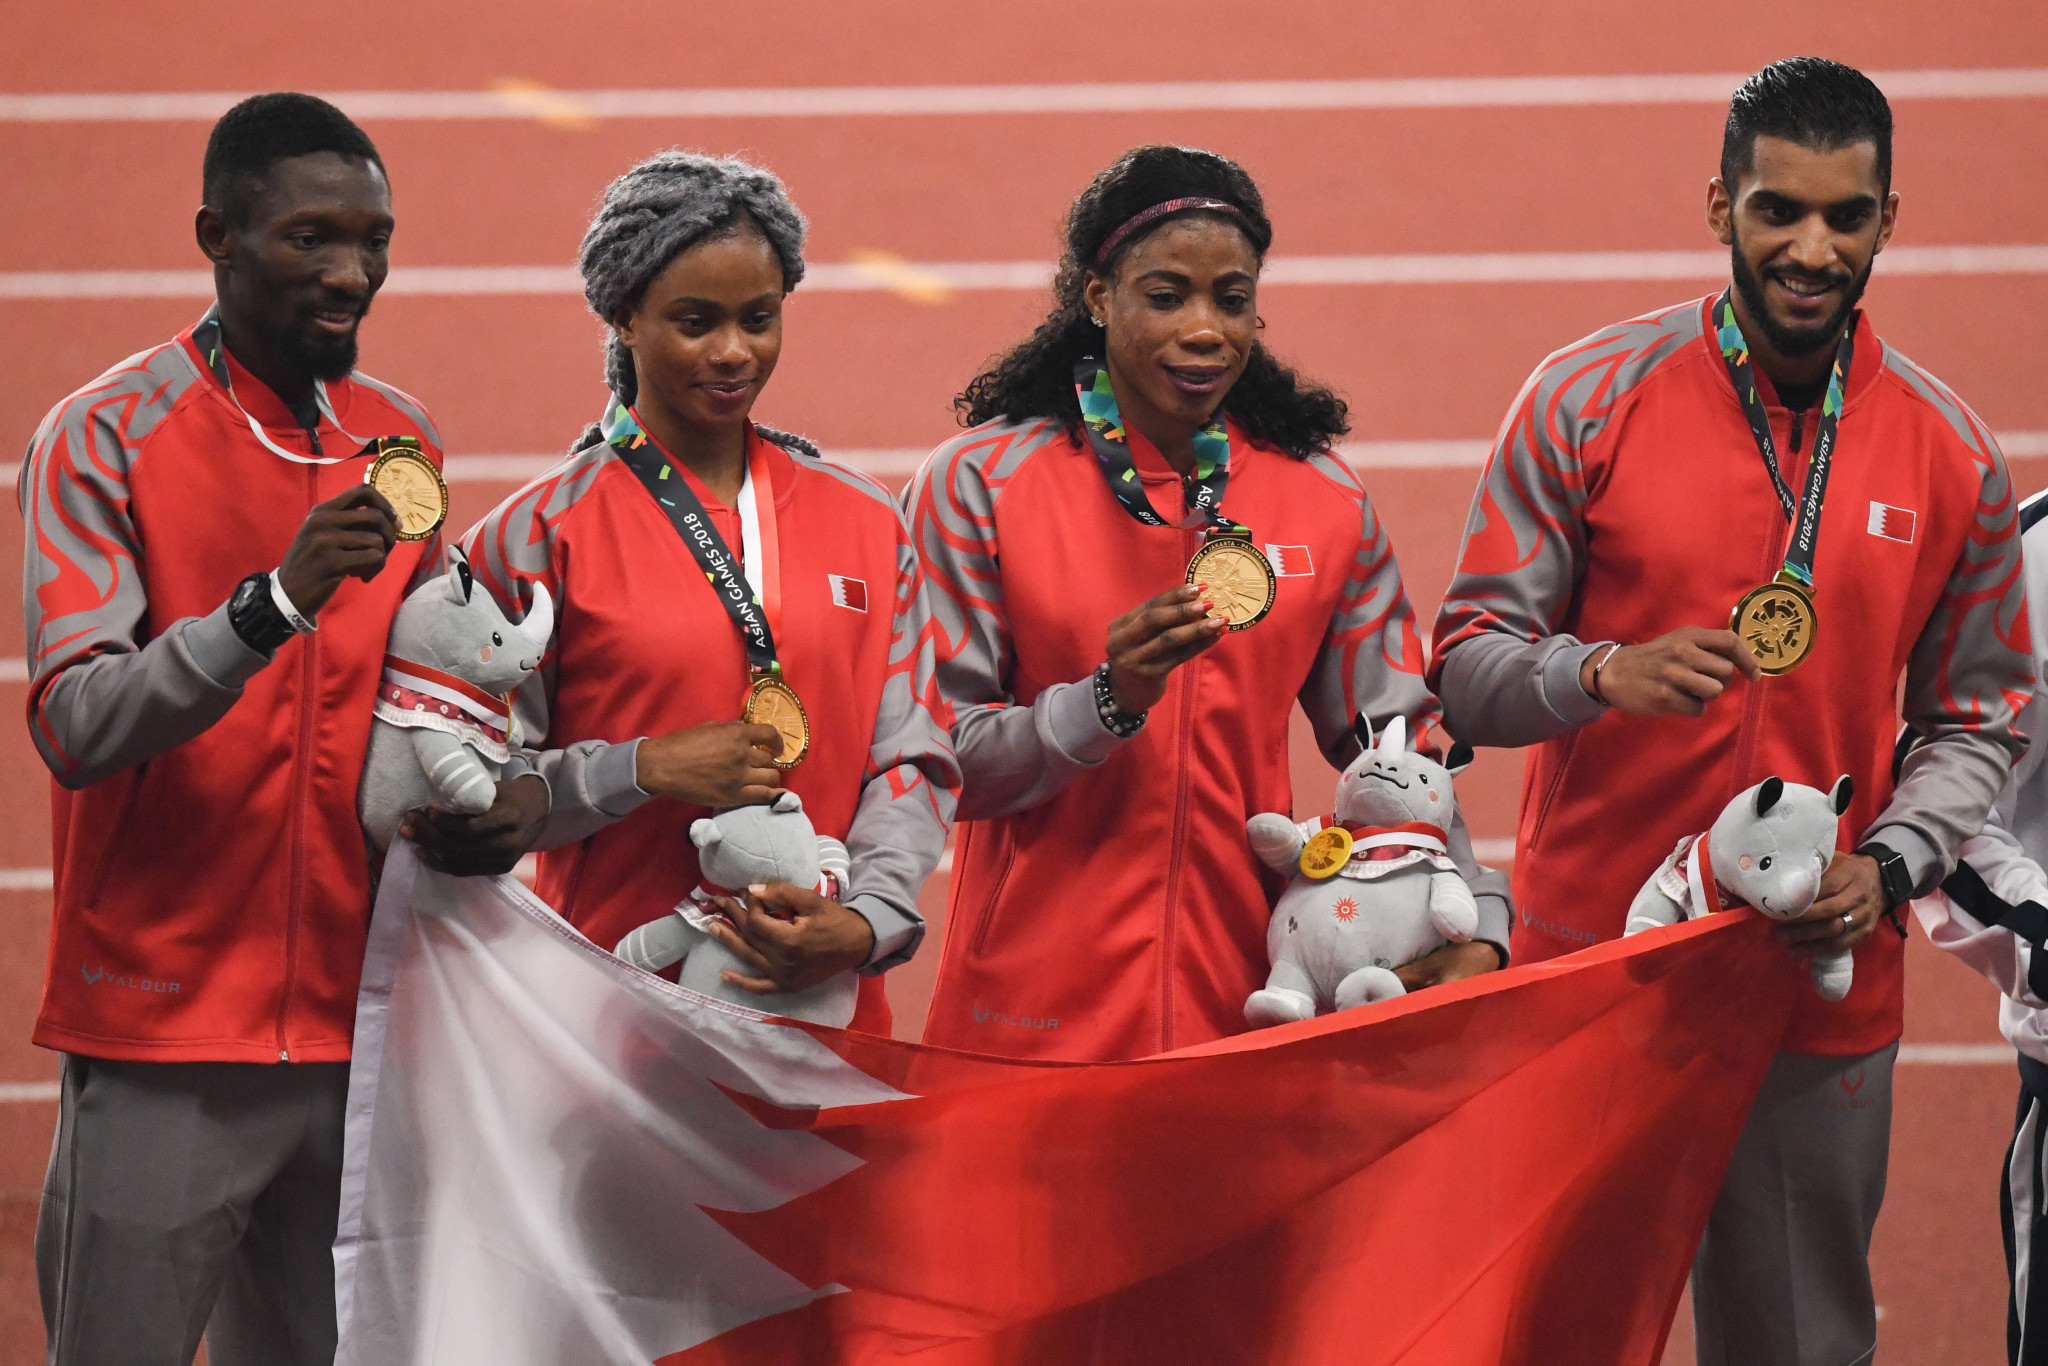 Bahrain will be stripped of the gold medal they won in the mixed 4x400m relay at the 2018 Asian Games ©Getty Images